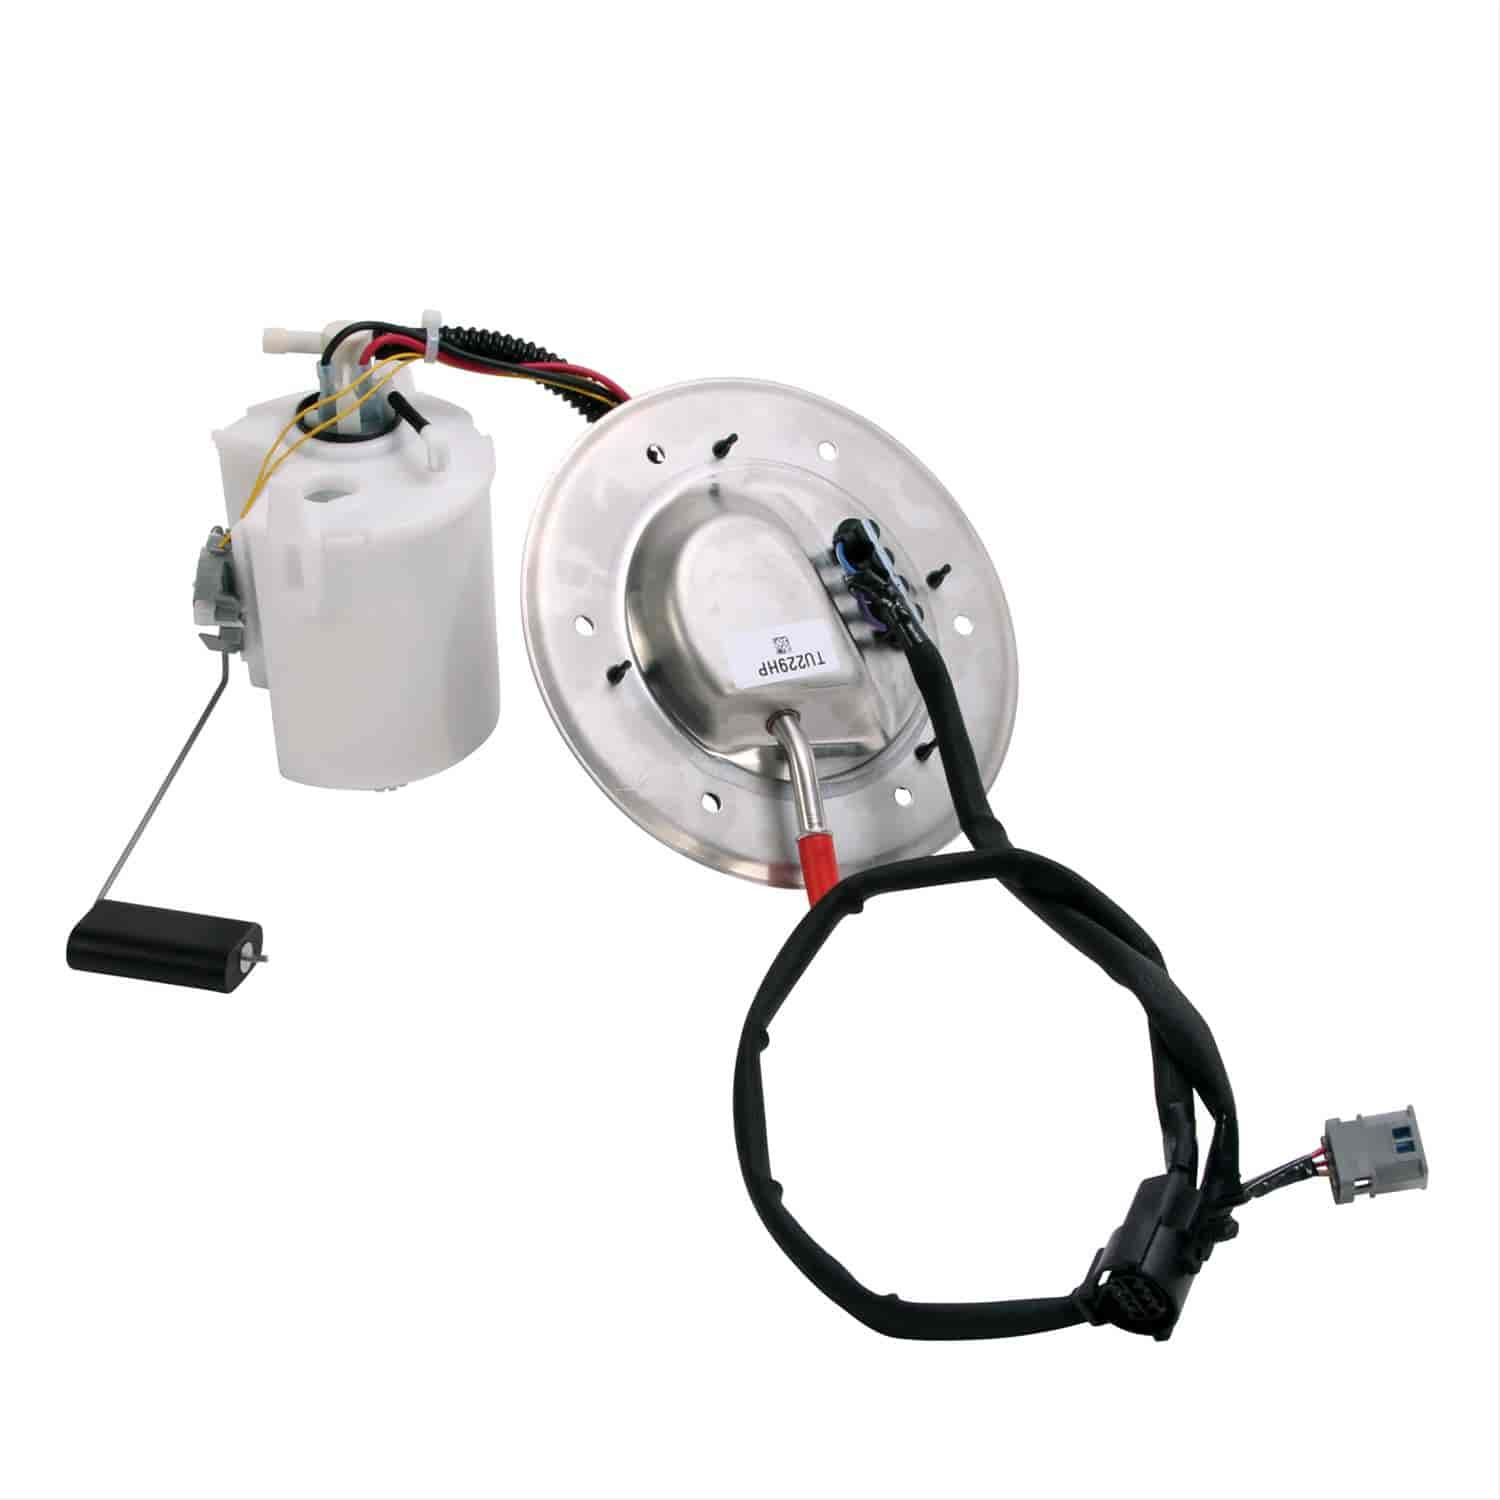 BBK Performance Parts 1861 - BBK Performance Parts Electric Fuel Pump Kits